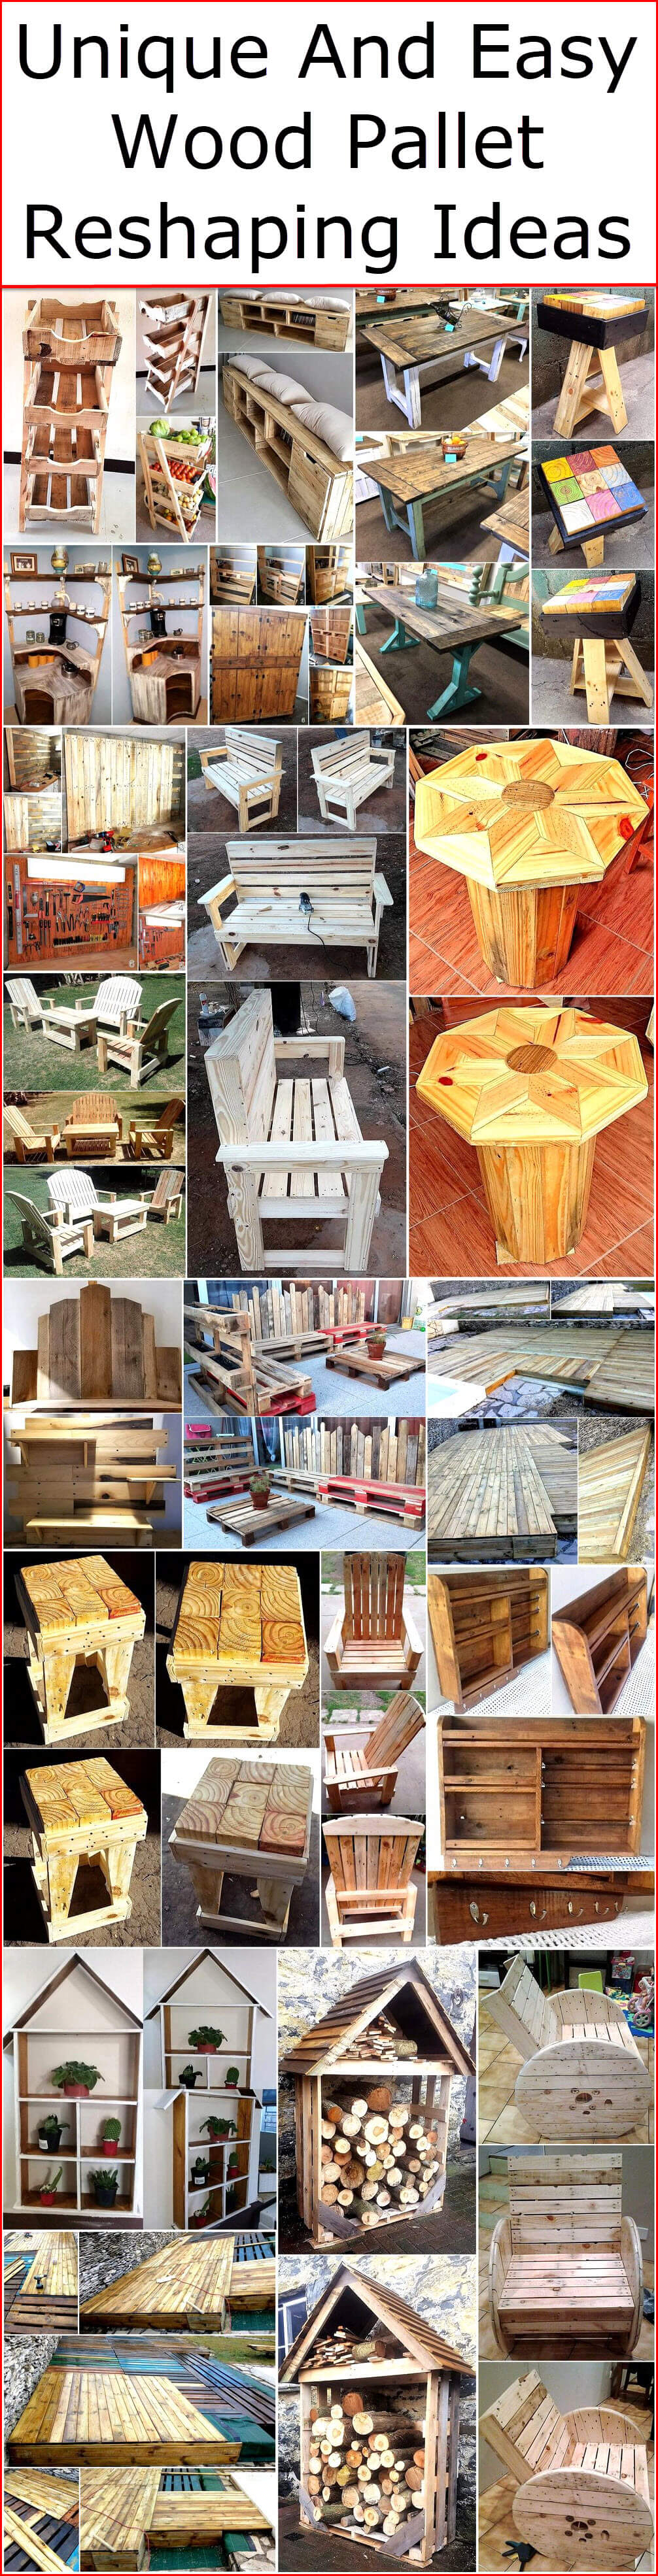 Unique And Easy Wood Pallet Reshaping Ideas